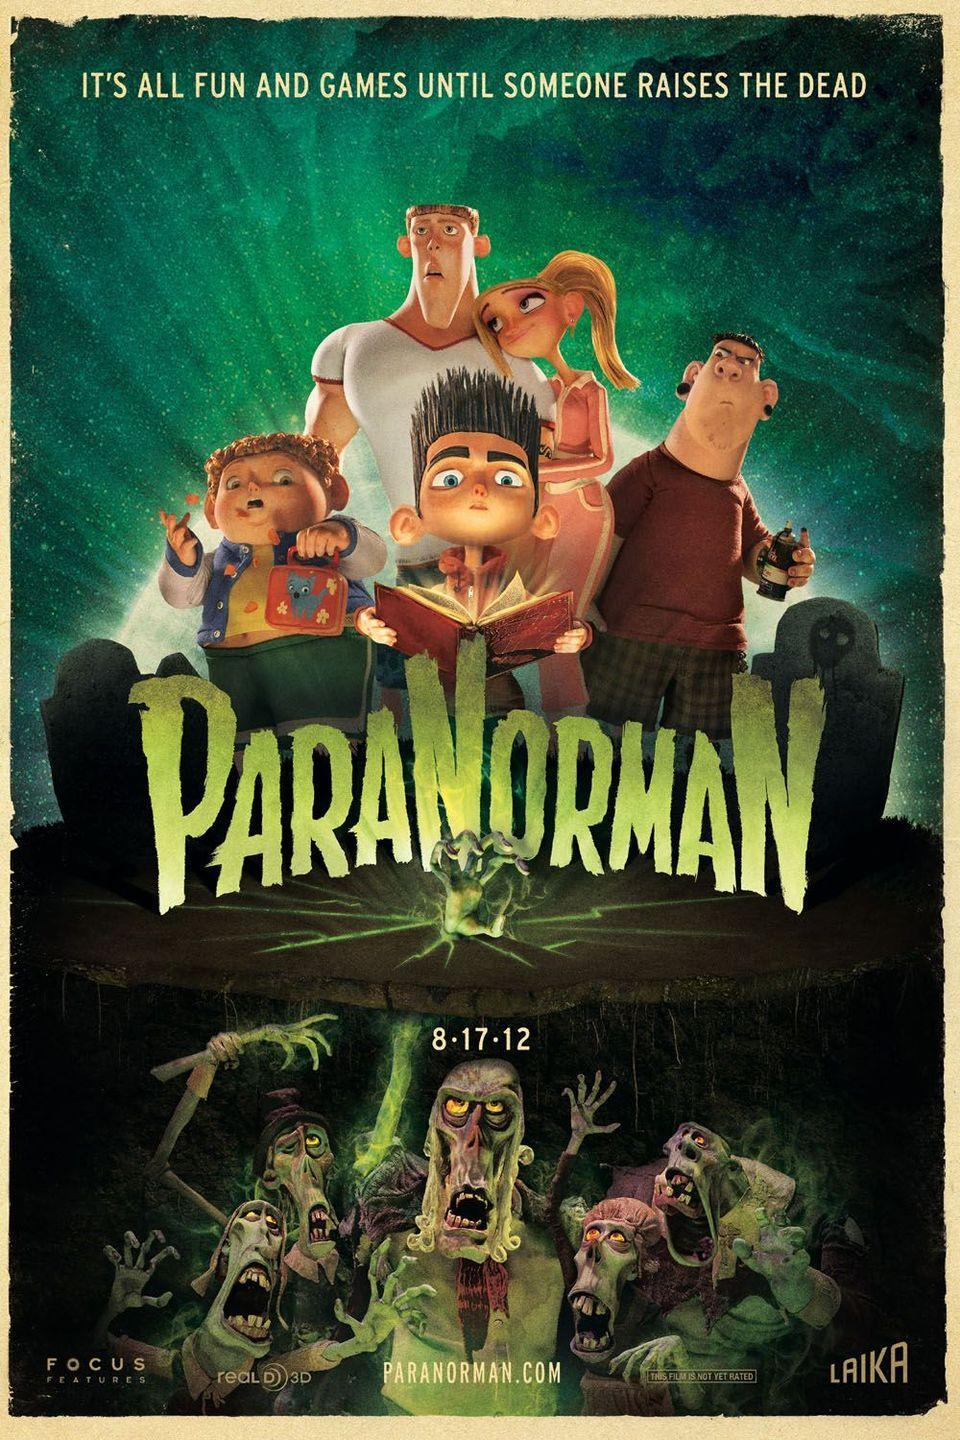 "<p>Looking for a kid-friendly zombie film? You (and the entire family) will love <em>ParaNorman</em>, a stop-motion <a href=""https://www.goodhousekeeping.com/life/parenting/g23282475/best-animated-movies/"" rel=""nofollow noopener"" target=""_blank"" data-ylk=""slk:animated movie"" class=""link rapid-noclick-resp"">animated movie</a> that follows a young boy who must use his paranormal abilities to save his small town from — you guessed it — zombies. </p><p><a class=""link rapid-noclick-resp"" href=""https://www.amazon.com/gp/video/detail/B0891R52TG/ref=atv_dl_rdr?tag=syn-yahoo-20&ascsubtag=%5Bartid%7C10055.g.33546030%5Bsrc%7Cyahoo-us"" rel=""nofollow noopener"" target=""_blank"" data-ylk=""slk:WATCH ON AMAZON"">WATCH ON AMAZON</a></p><p><strong>RELATED: </strong><a href=""https://www.goodhousekeeping.com/holidays/halloween-ideas/g2661/halloween-movies/"" rel=""nofollow noopener"" target=""_blank"" data-ylk=""slk:40 Kids' Halloween Movies That Won't Keep Them up All Night"" class=""link rapid-noclick-resp"">40 Kids' Halloween Movies That Won't Keep Them up All Night</a></p>"